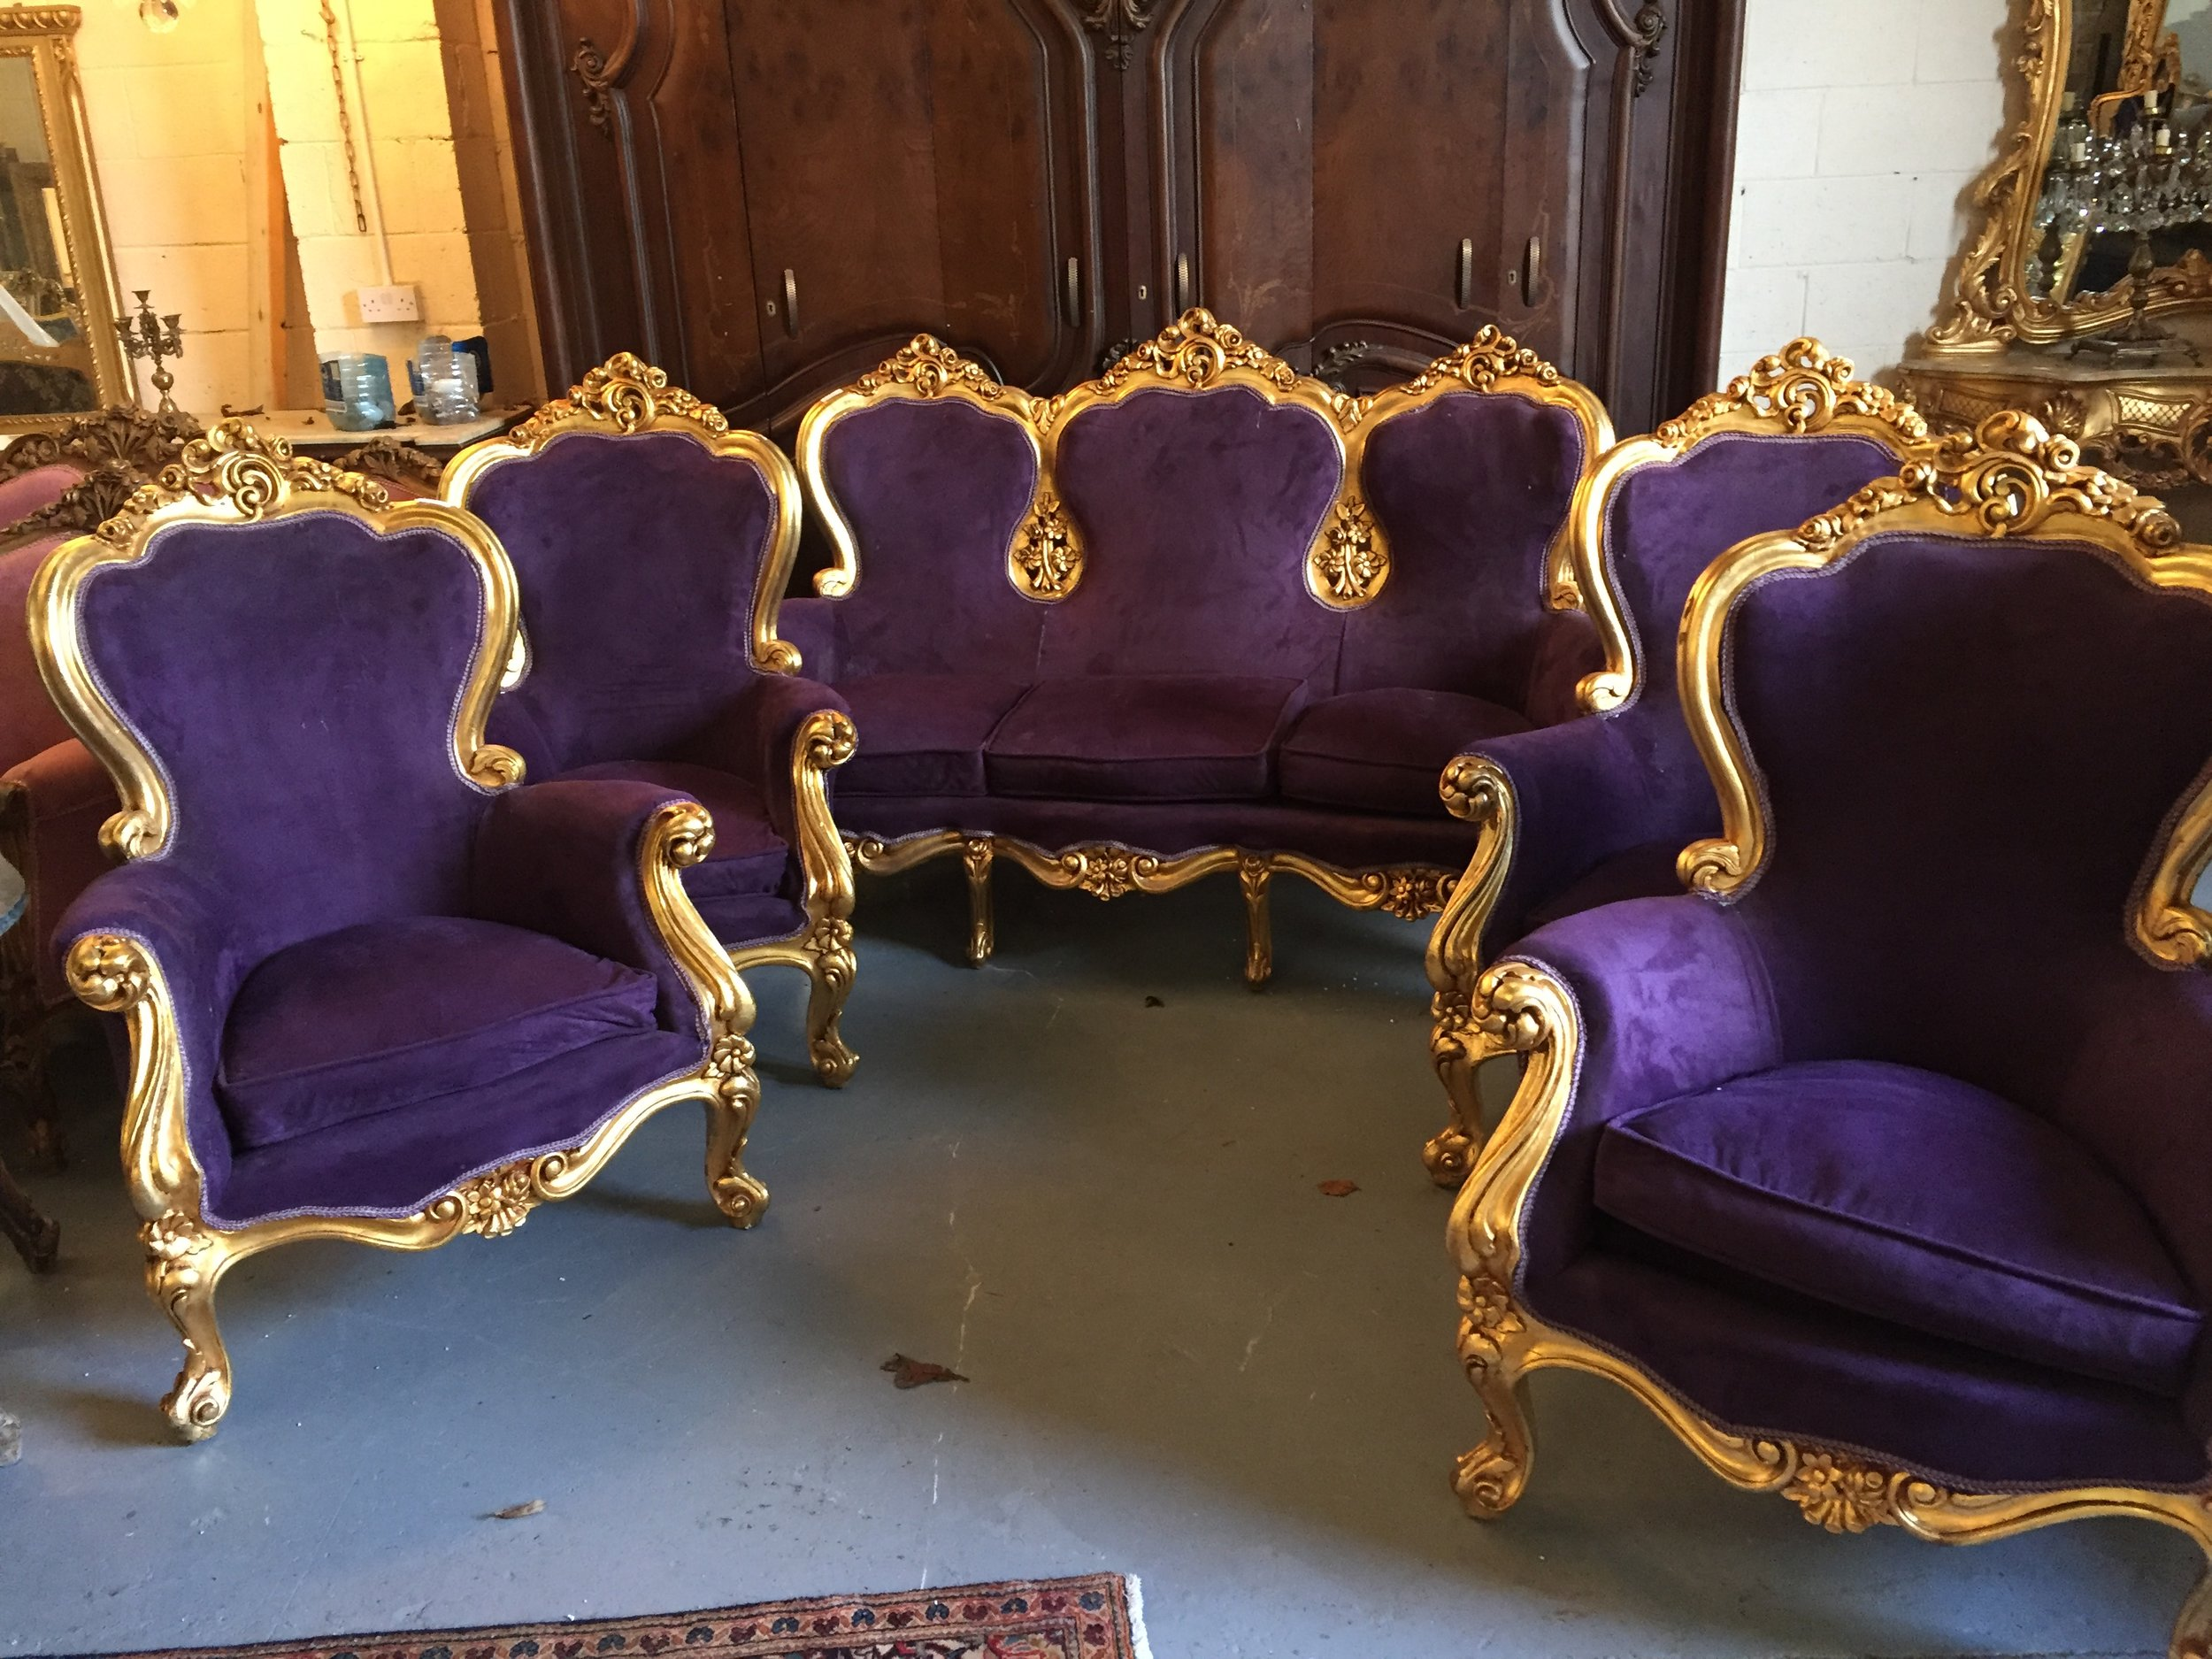 Renaissance Antique Furniture and Lighting Warehouse Dublin Ireland